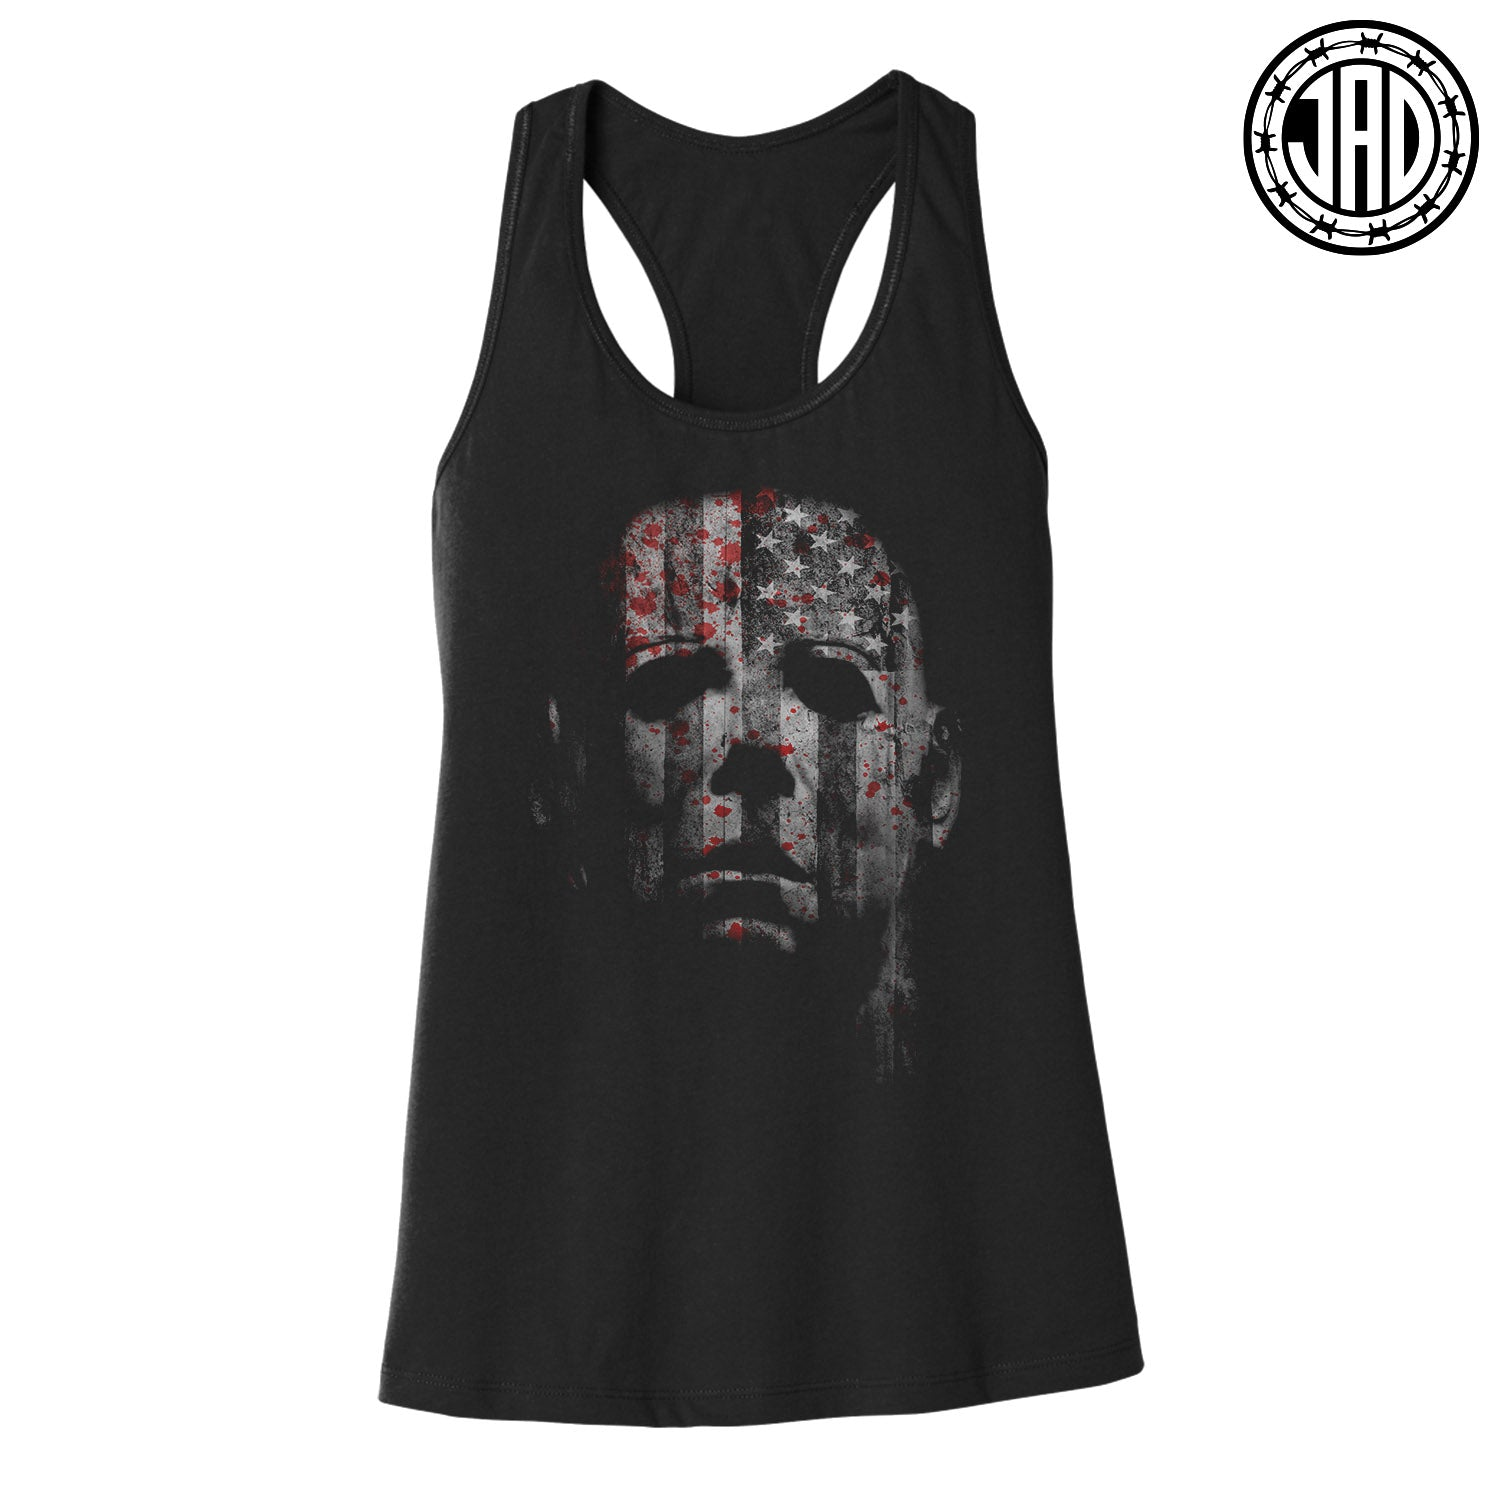 American Dream - V2 - Women's Racerback Tank